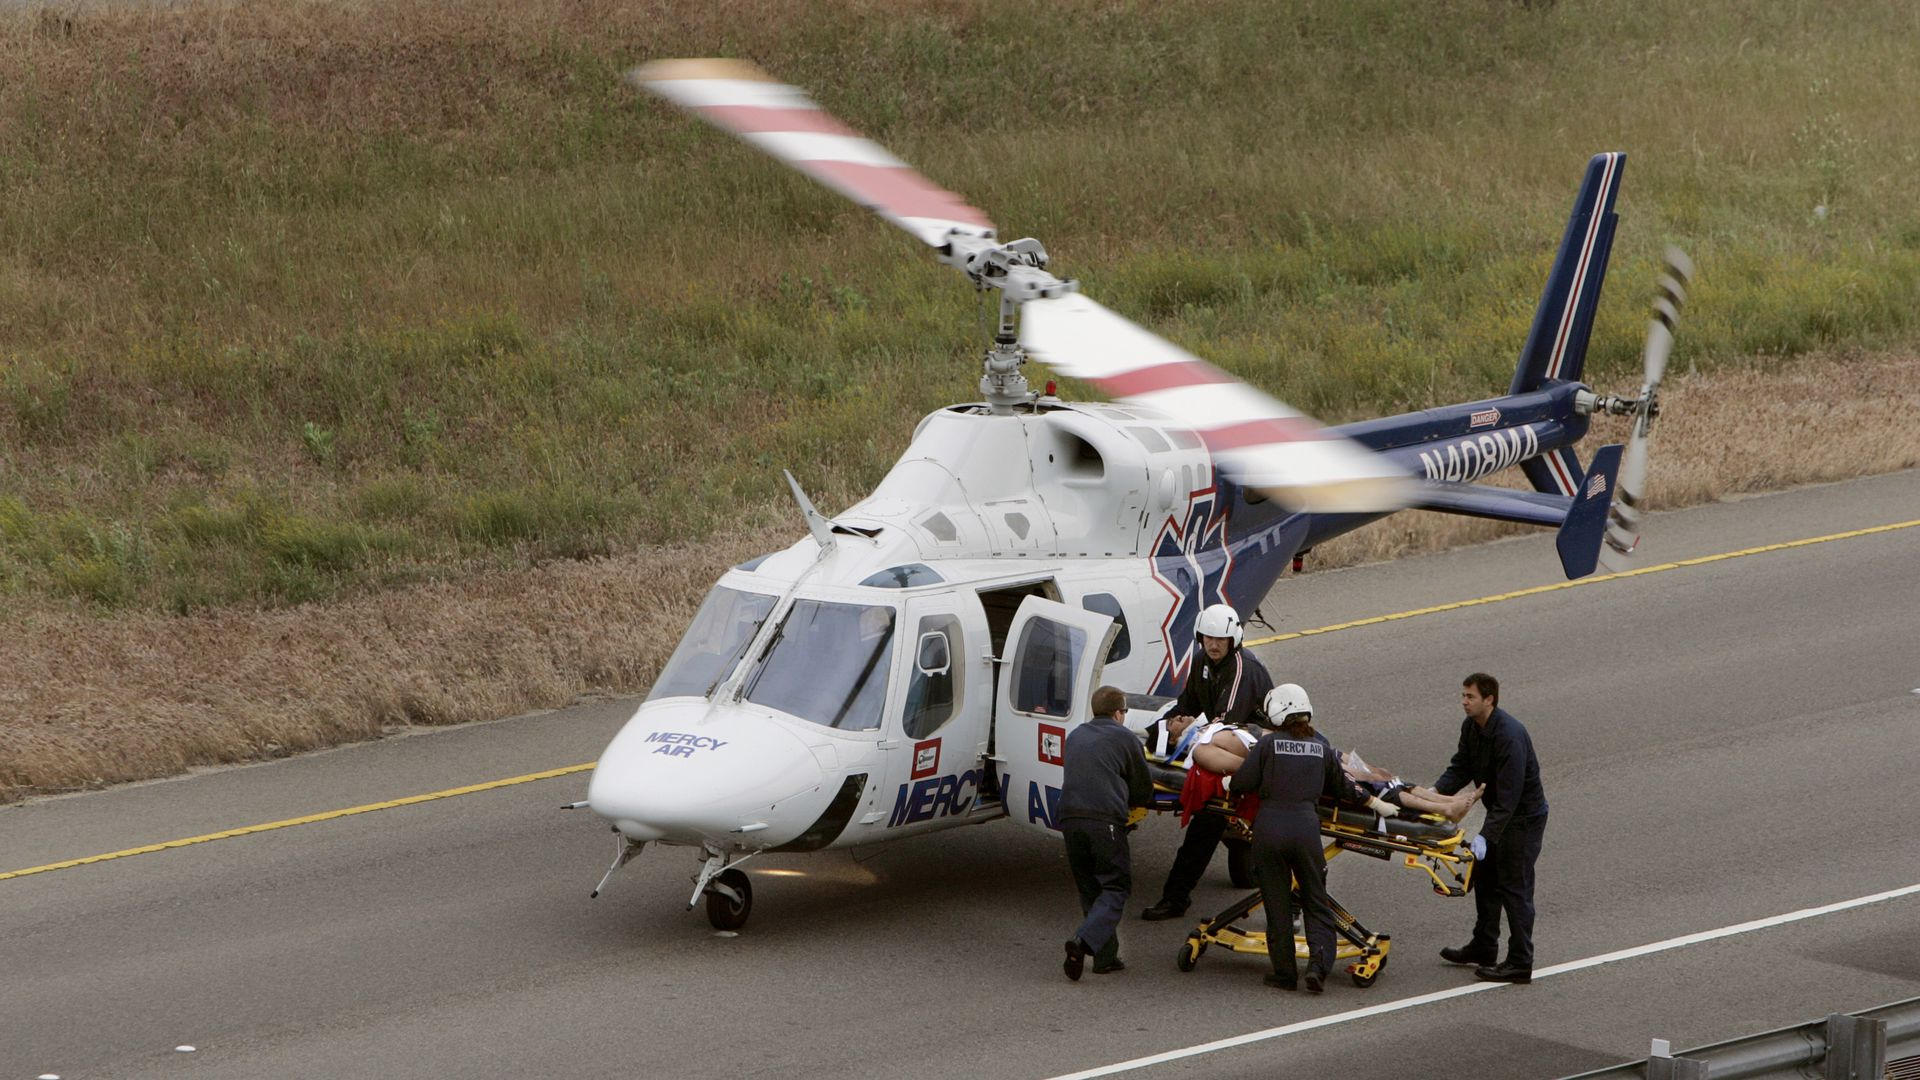 Crash victim being loaded into an air ambulance